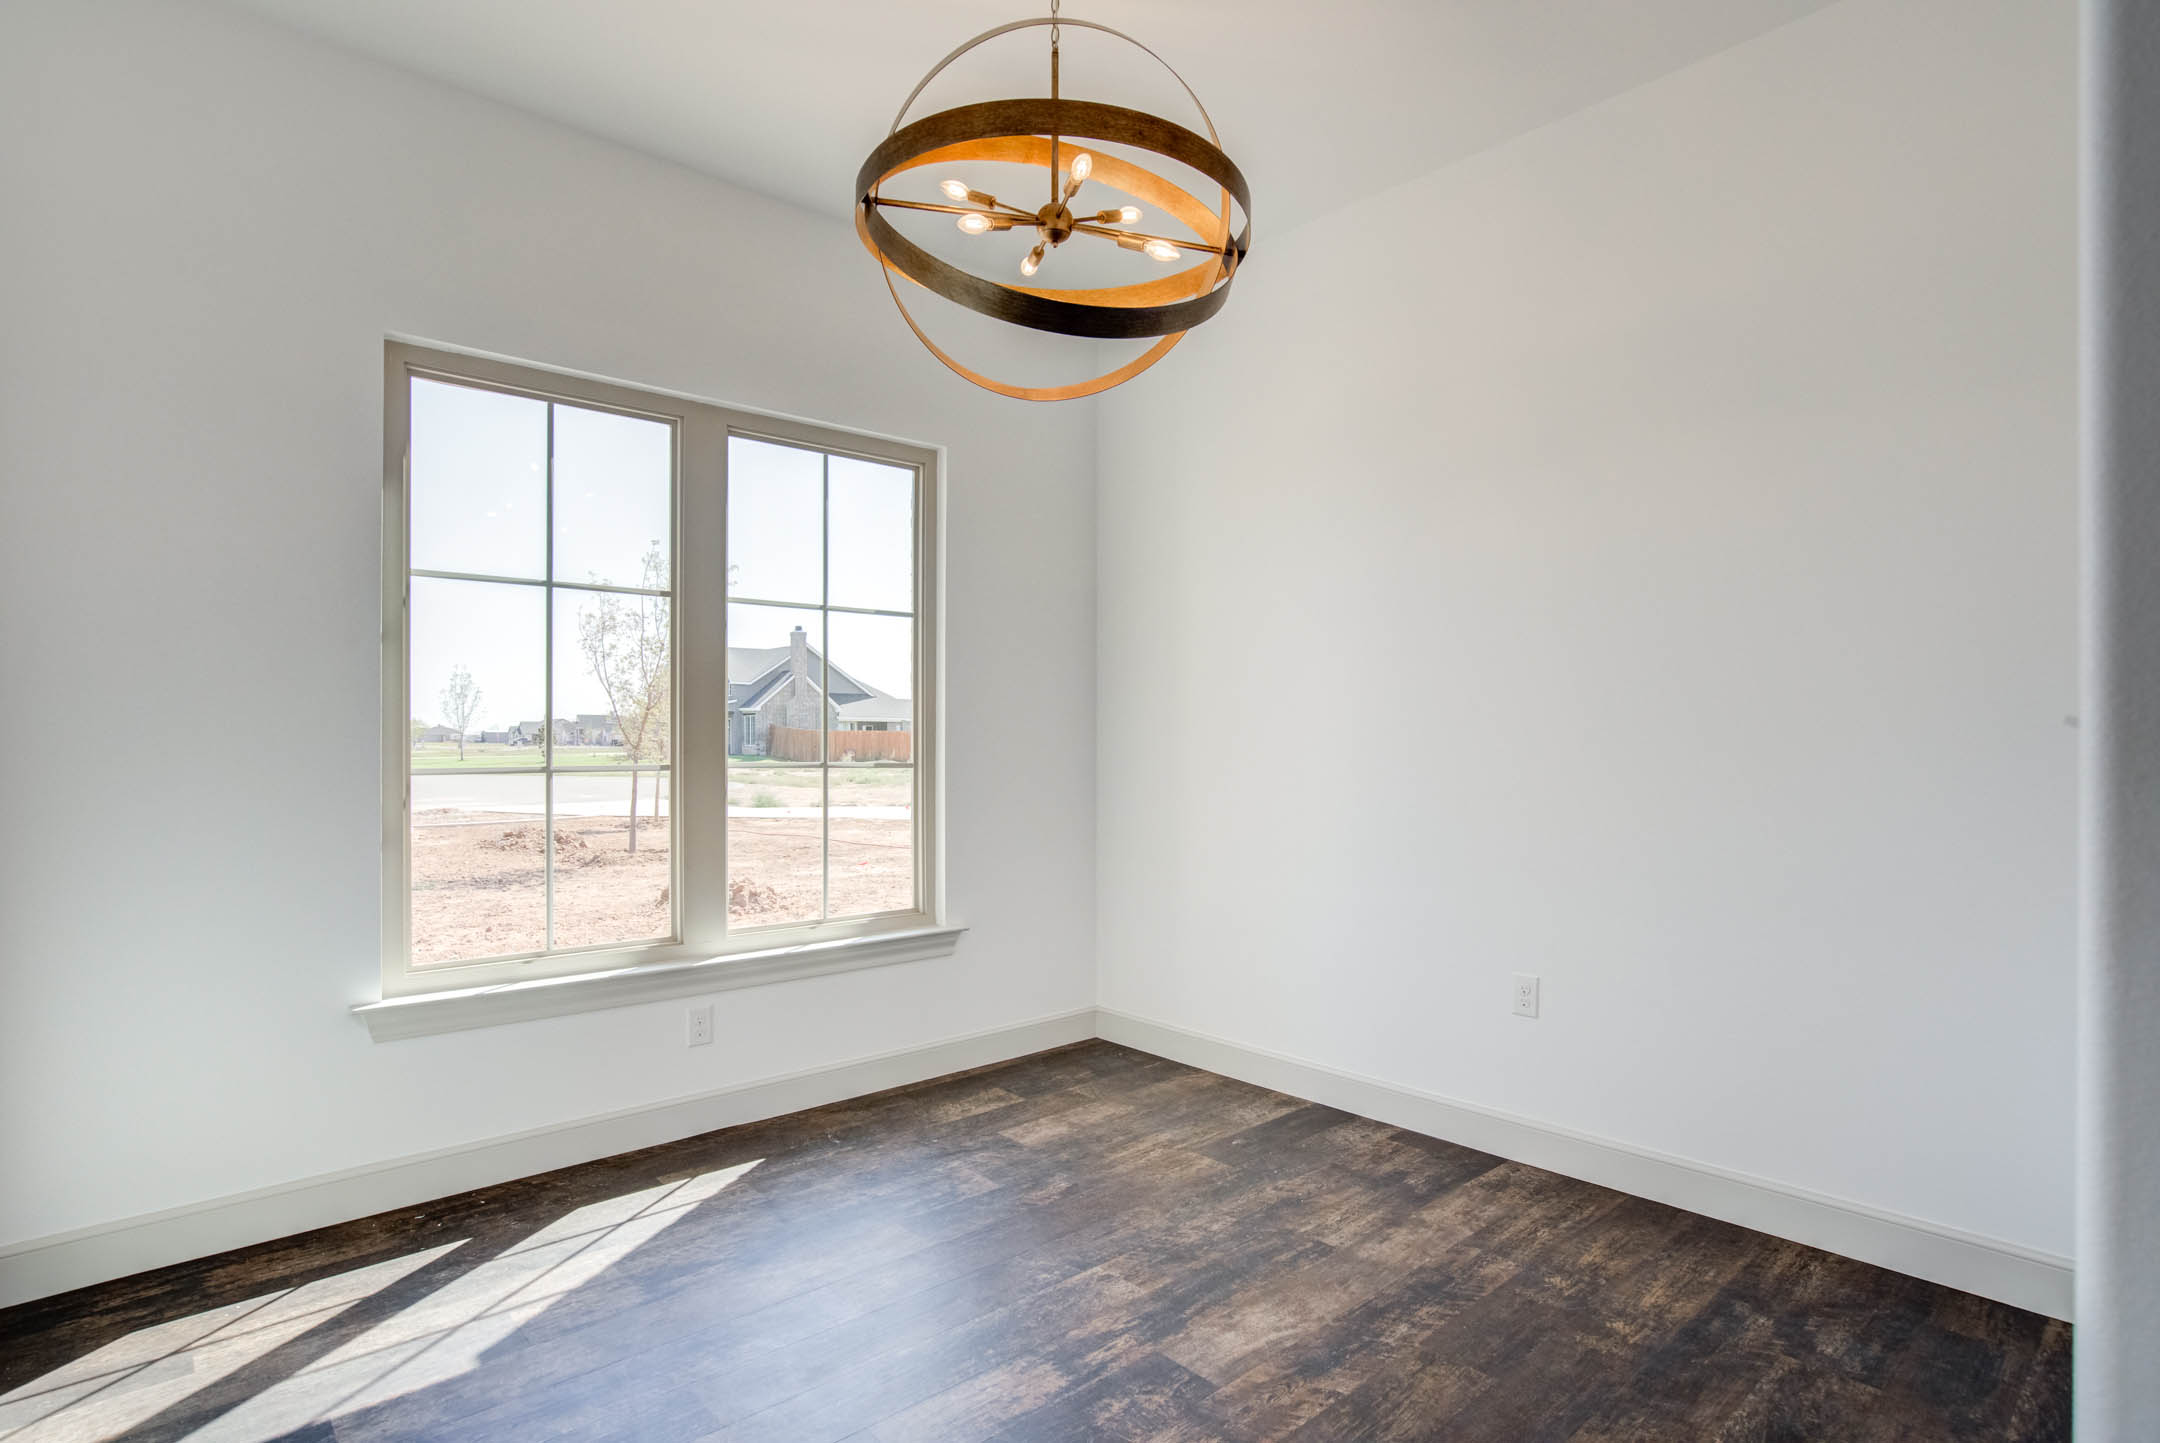 Dining area in new Lubbock area home.